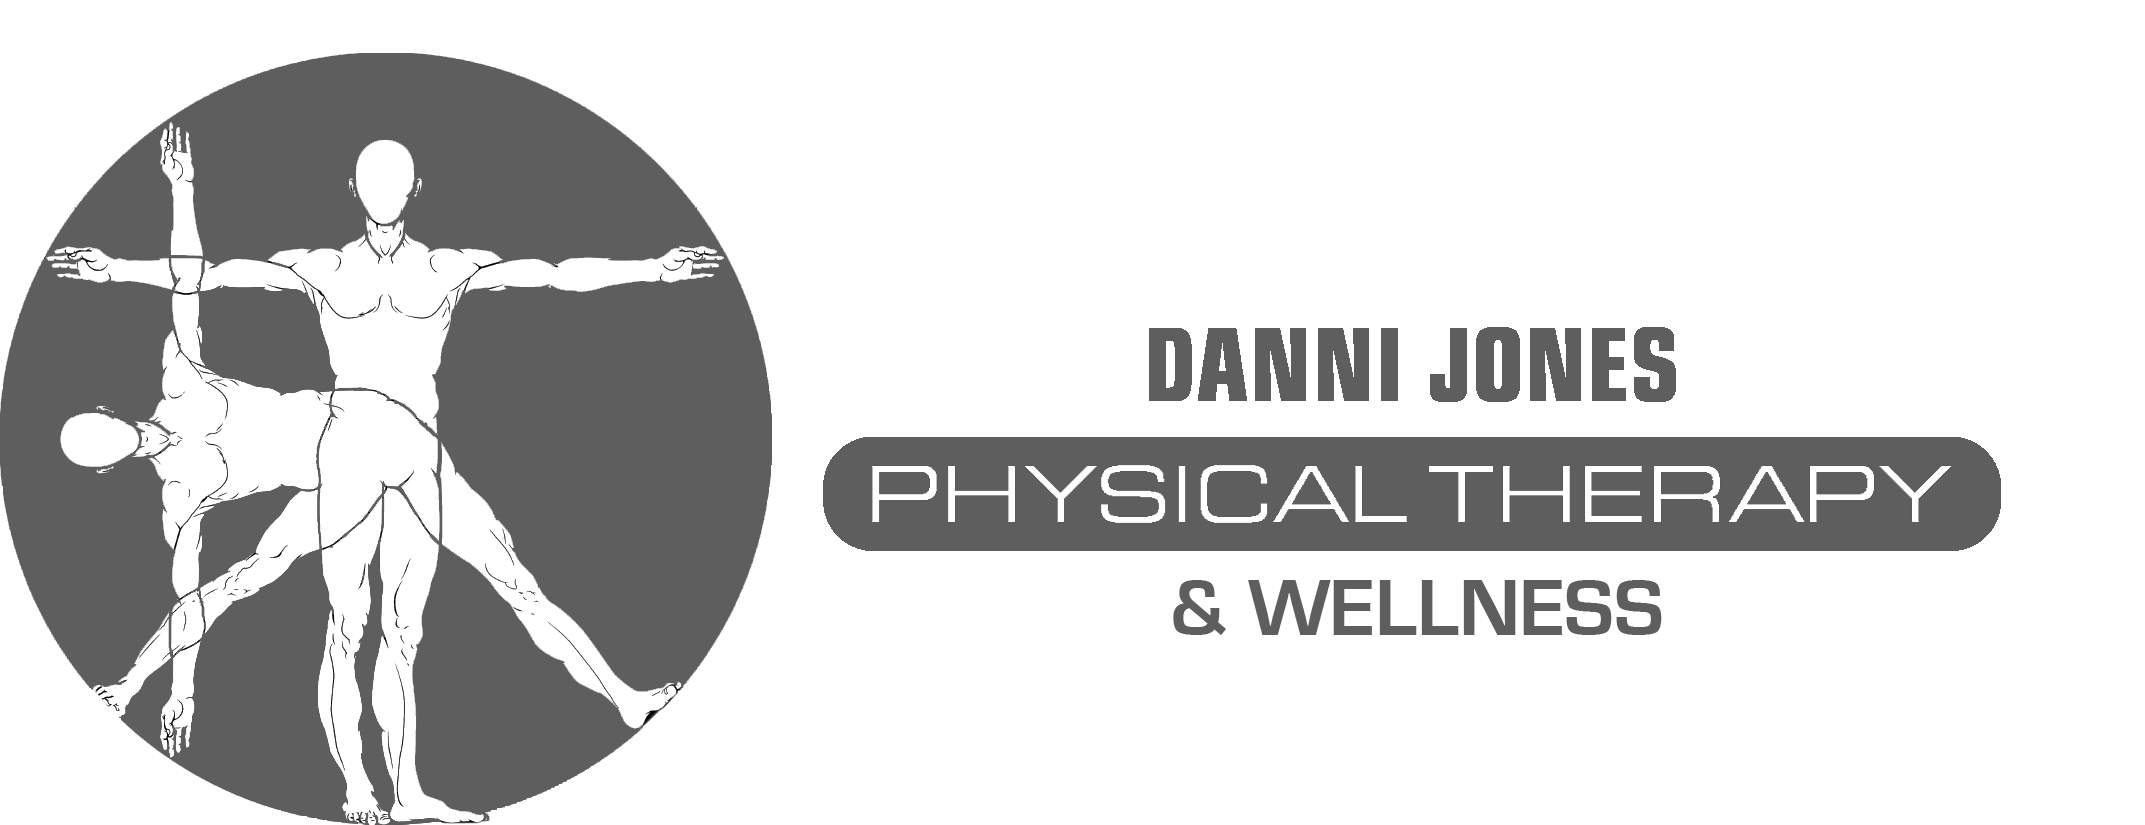 Danni Jones Physical Therapy Logo